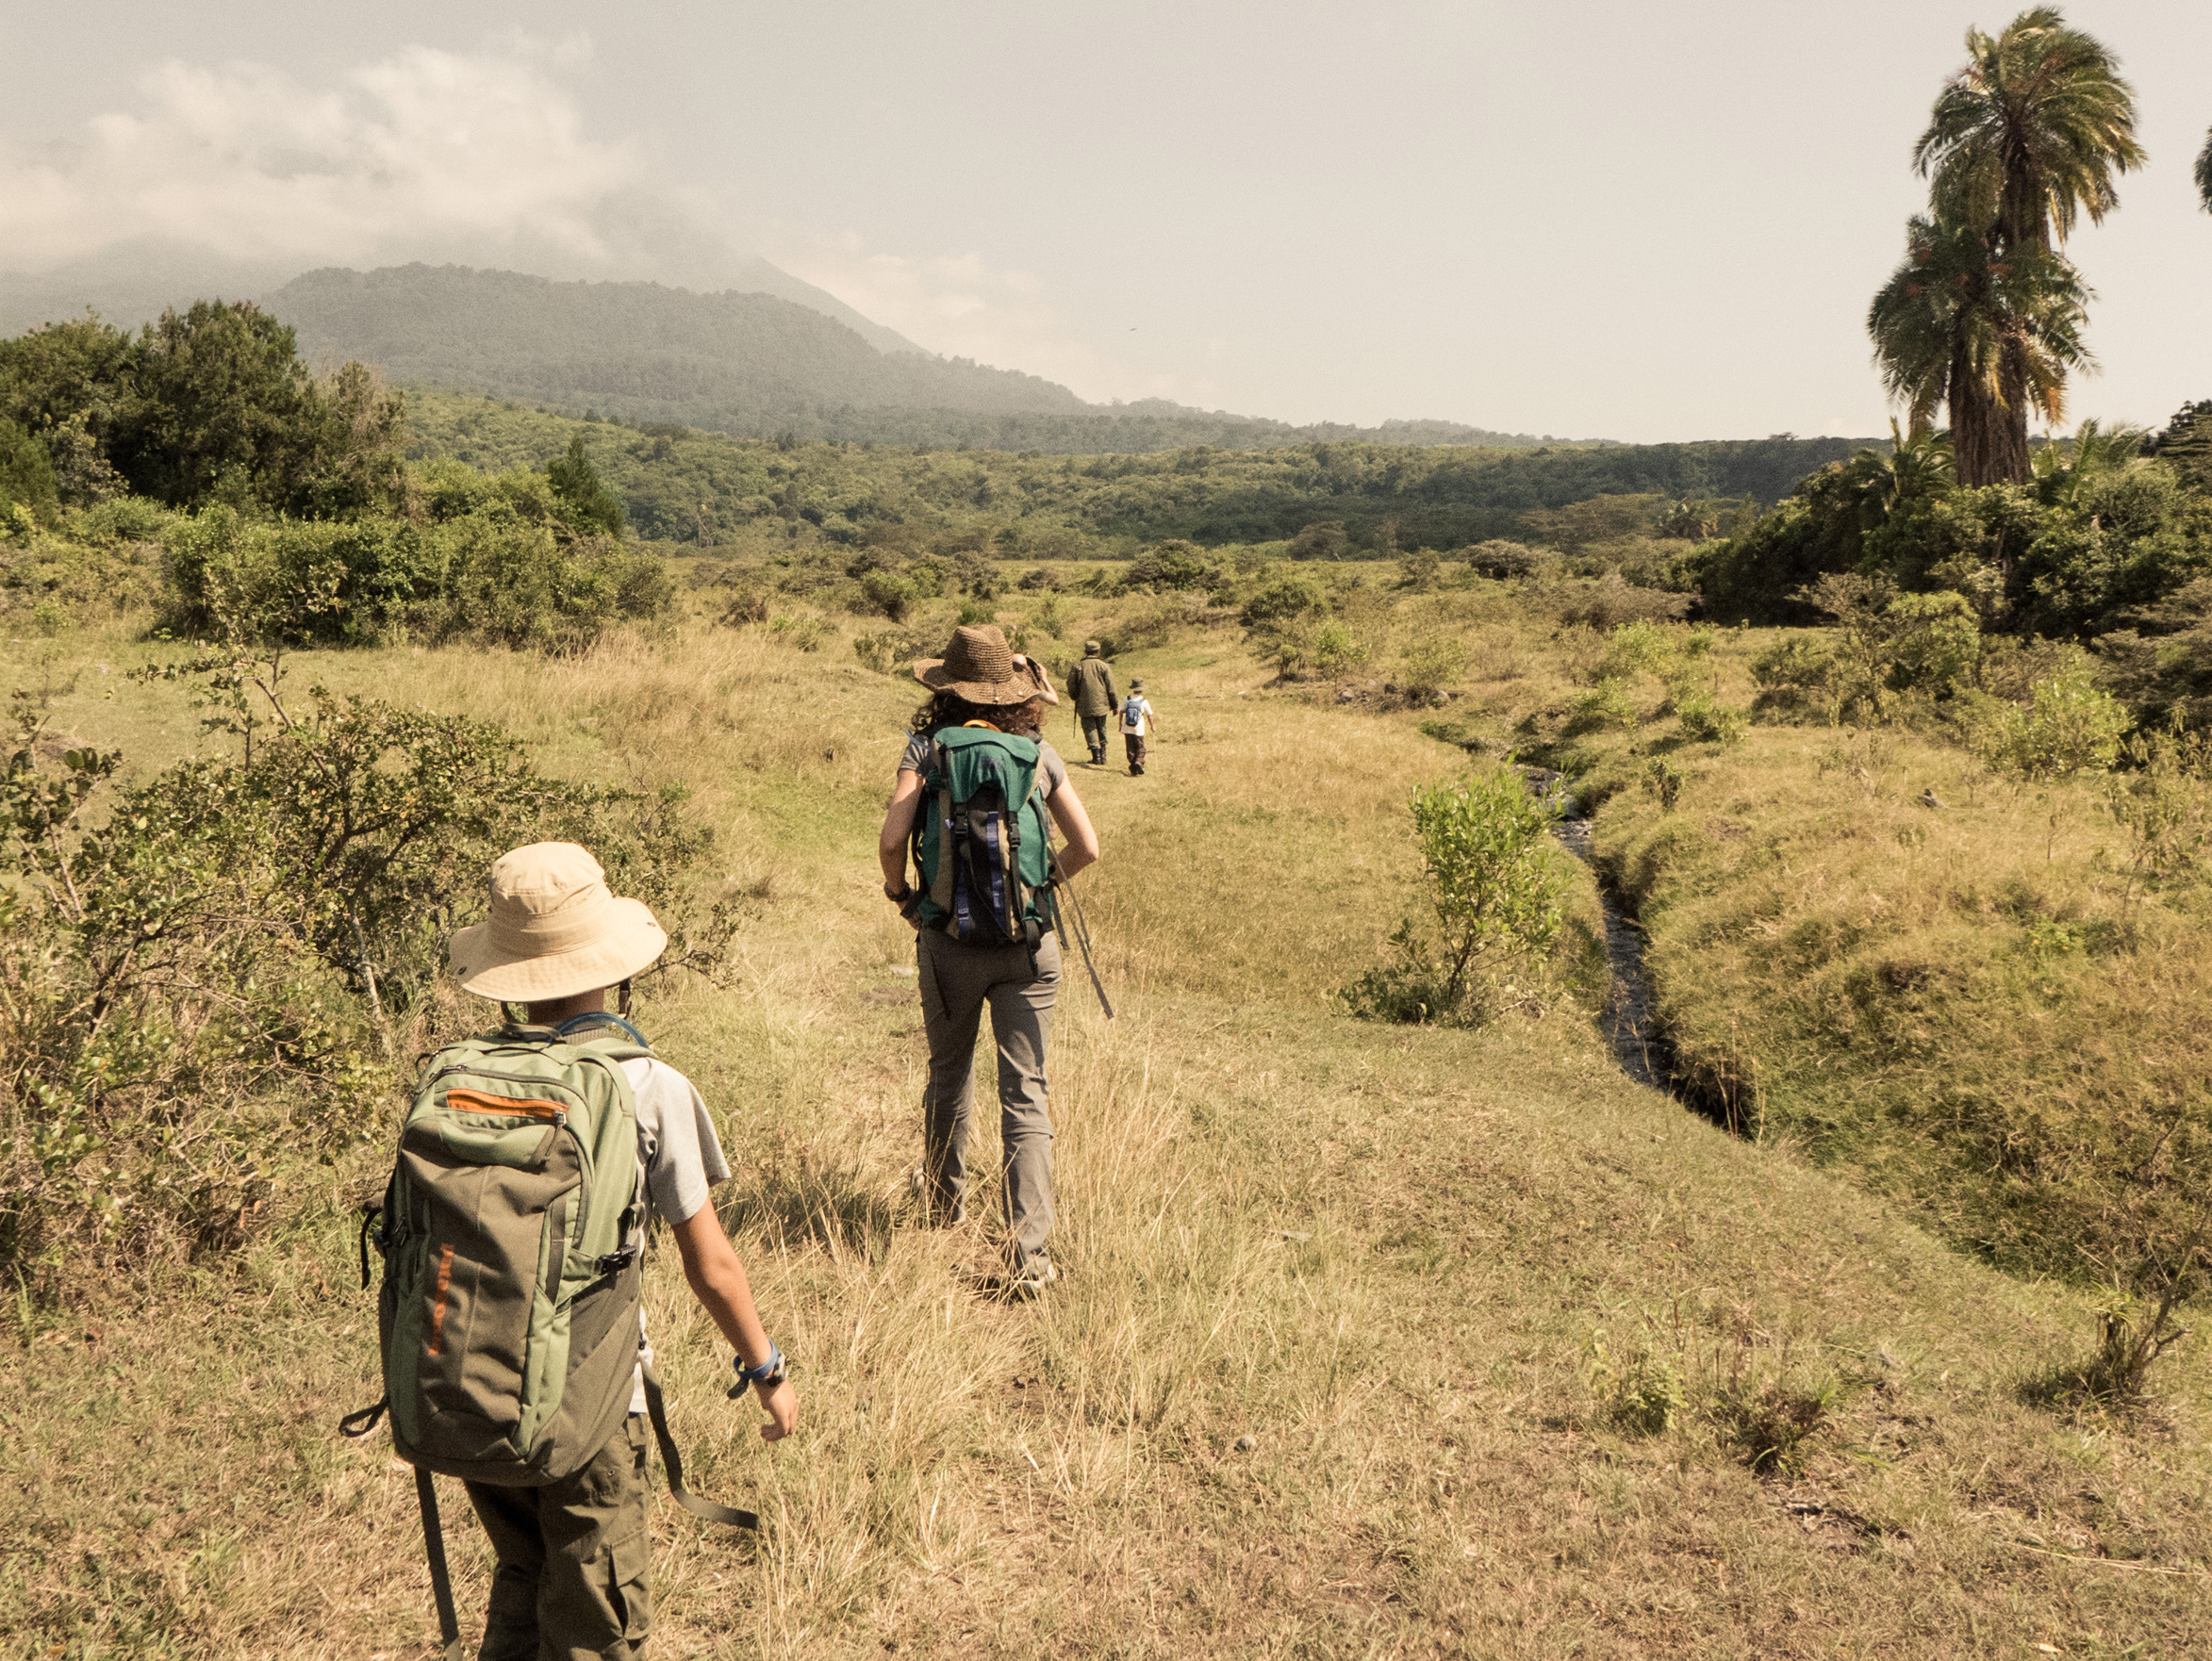 trips are tailor-made - All trips are private and tailor-designed to the specific group.A minimum of only 2 people is required to book your own private Traverse. Families are welcome.